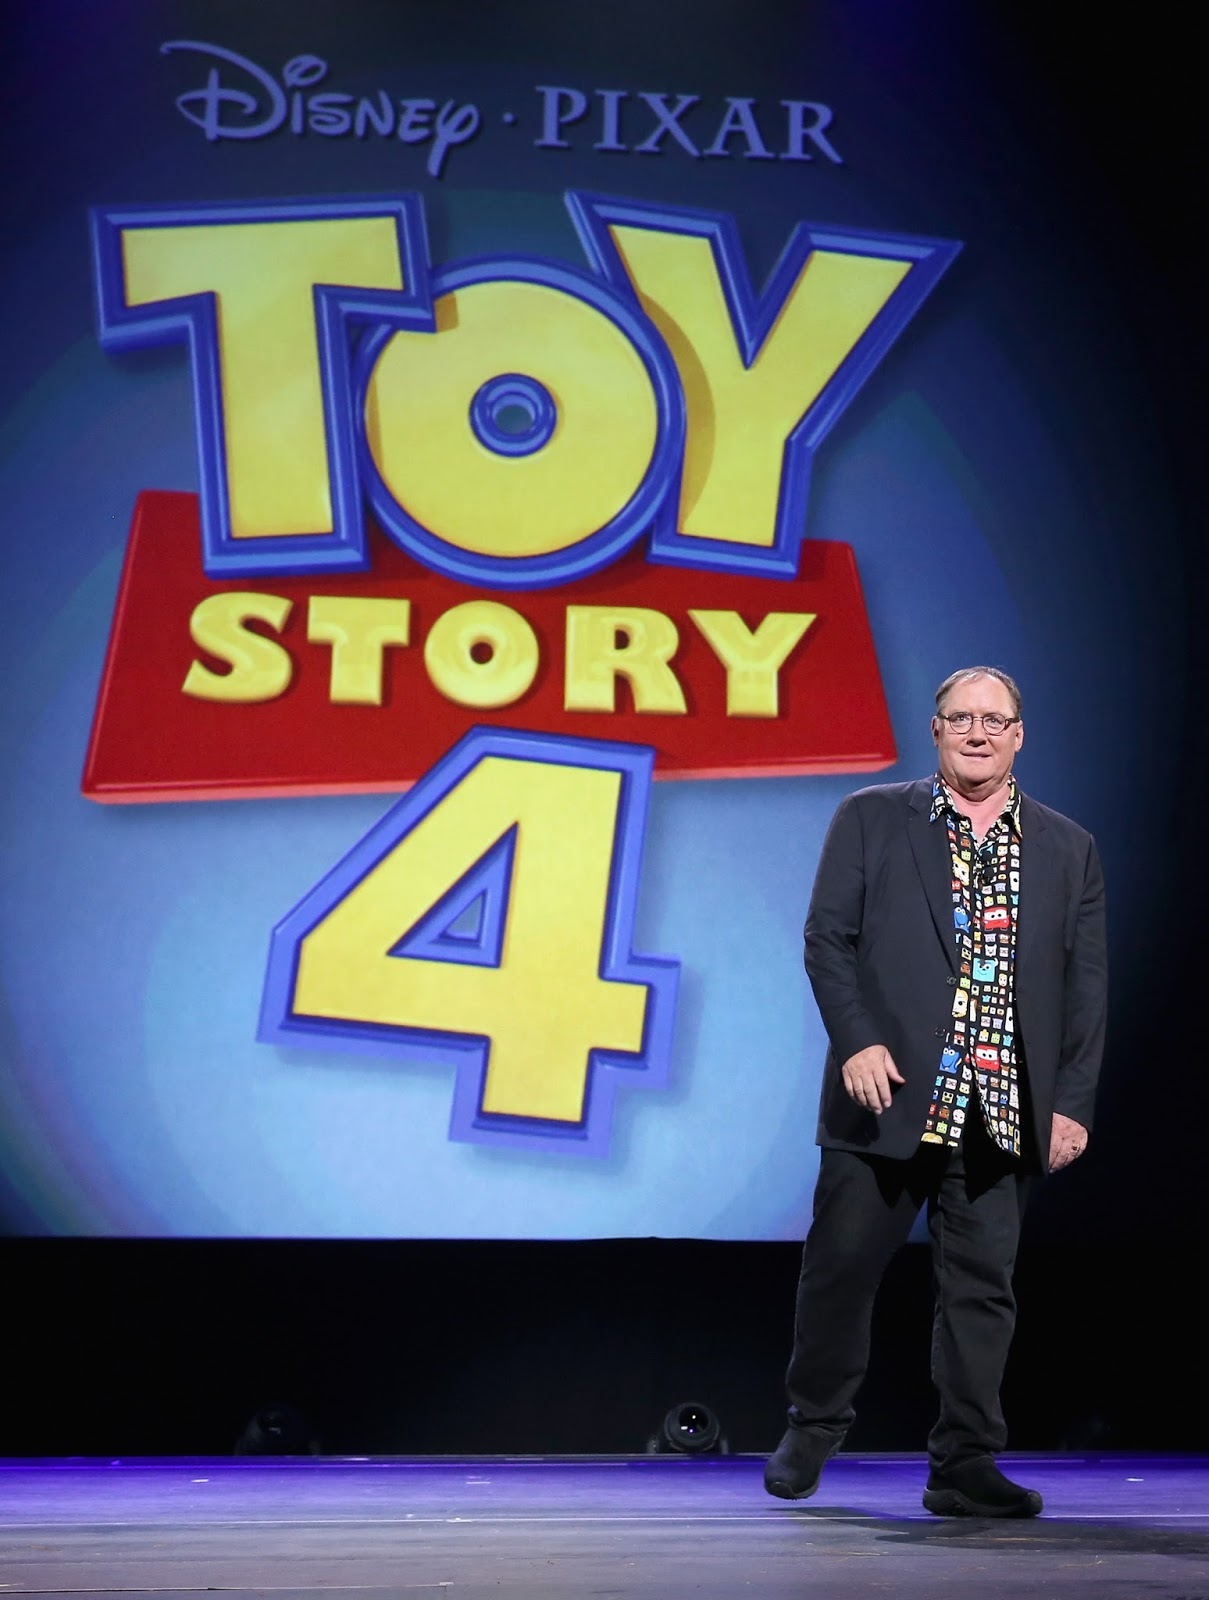 Toy Story 4 Toys : Collecting toyz toy story th anniversary celebration